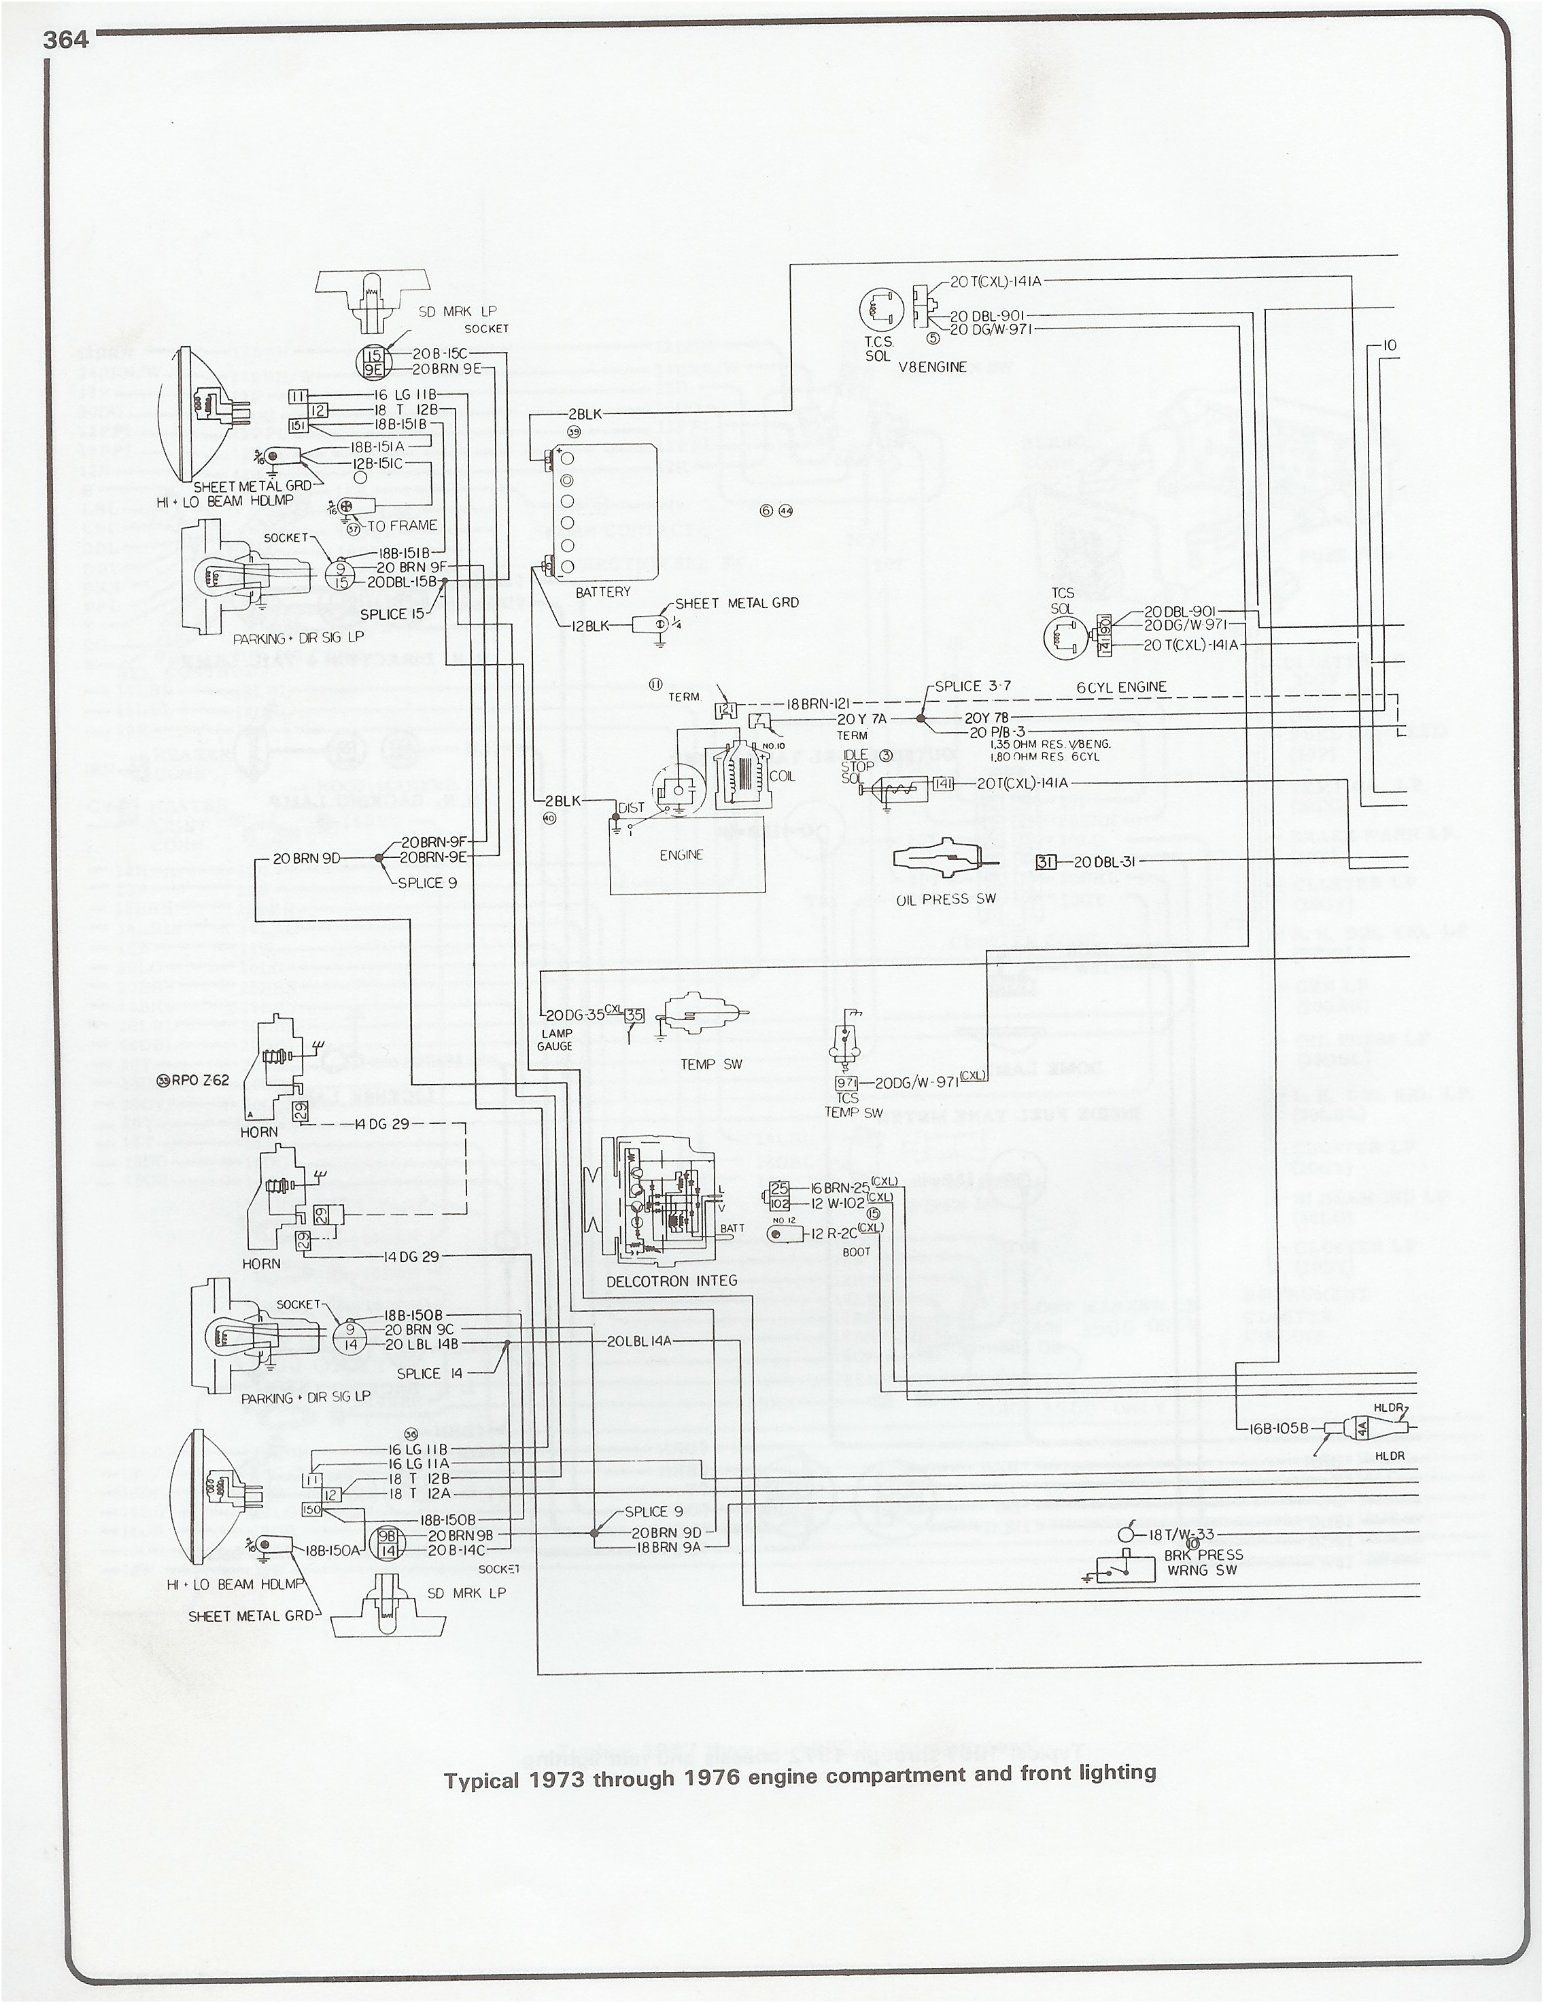 1978 gmc truck neutral switch wiring diagram wiring diagram 1973 1976 chevy pickup chevy wiring diagram  wiring diagram 1973 1976 chevy pickup